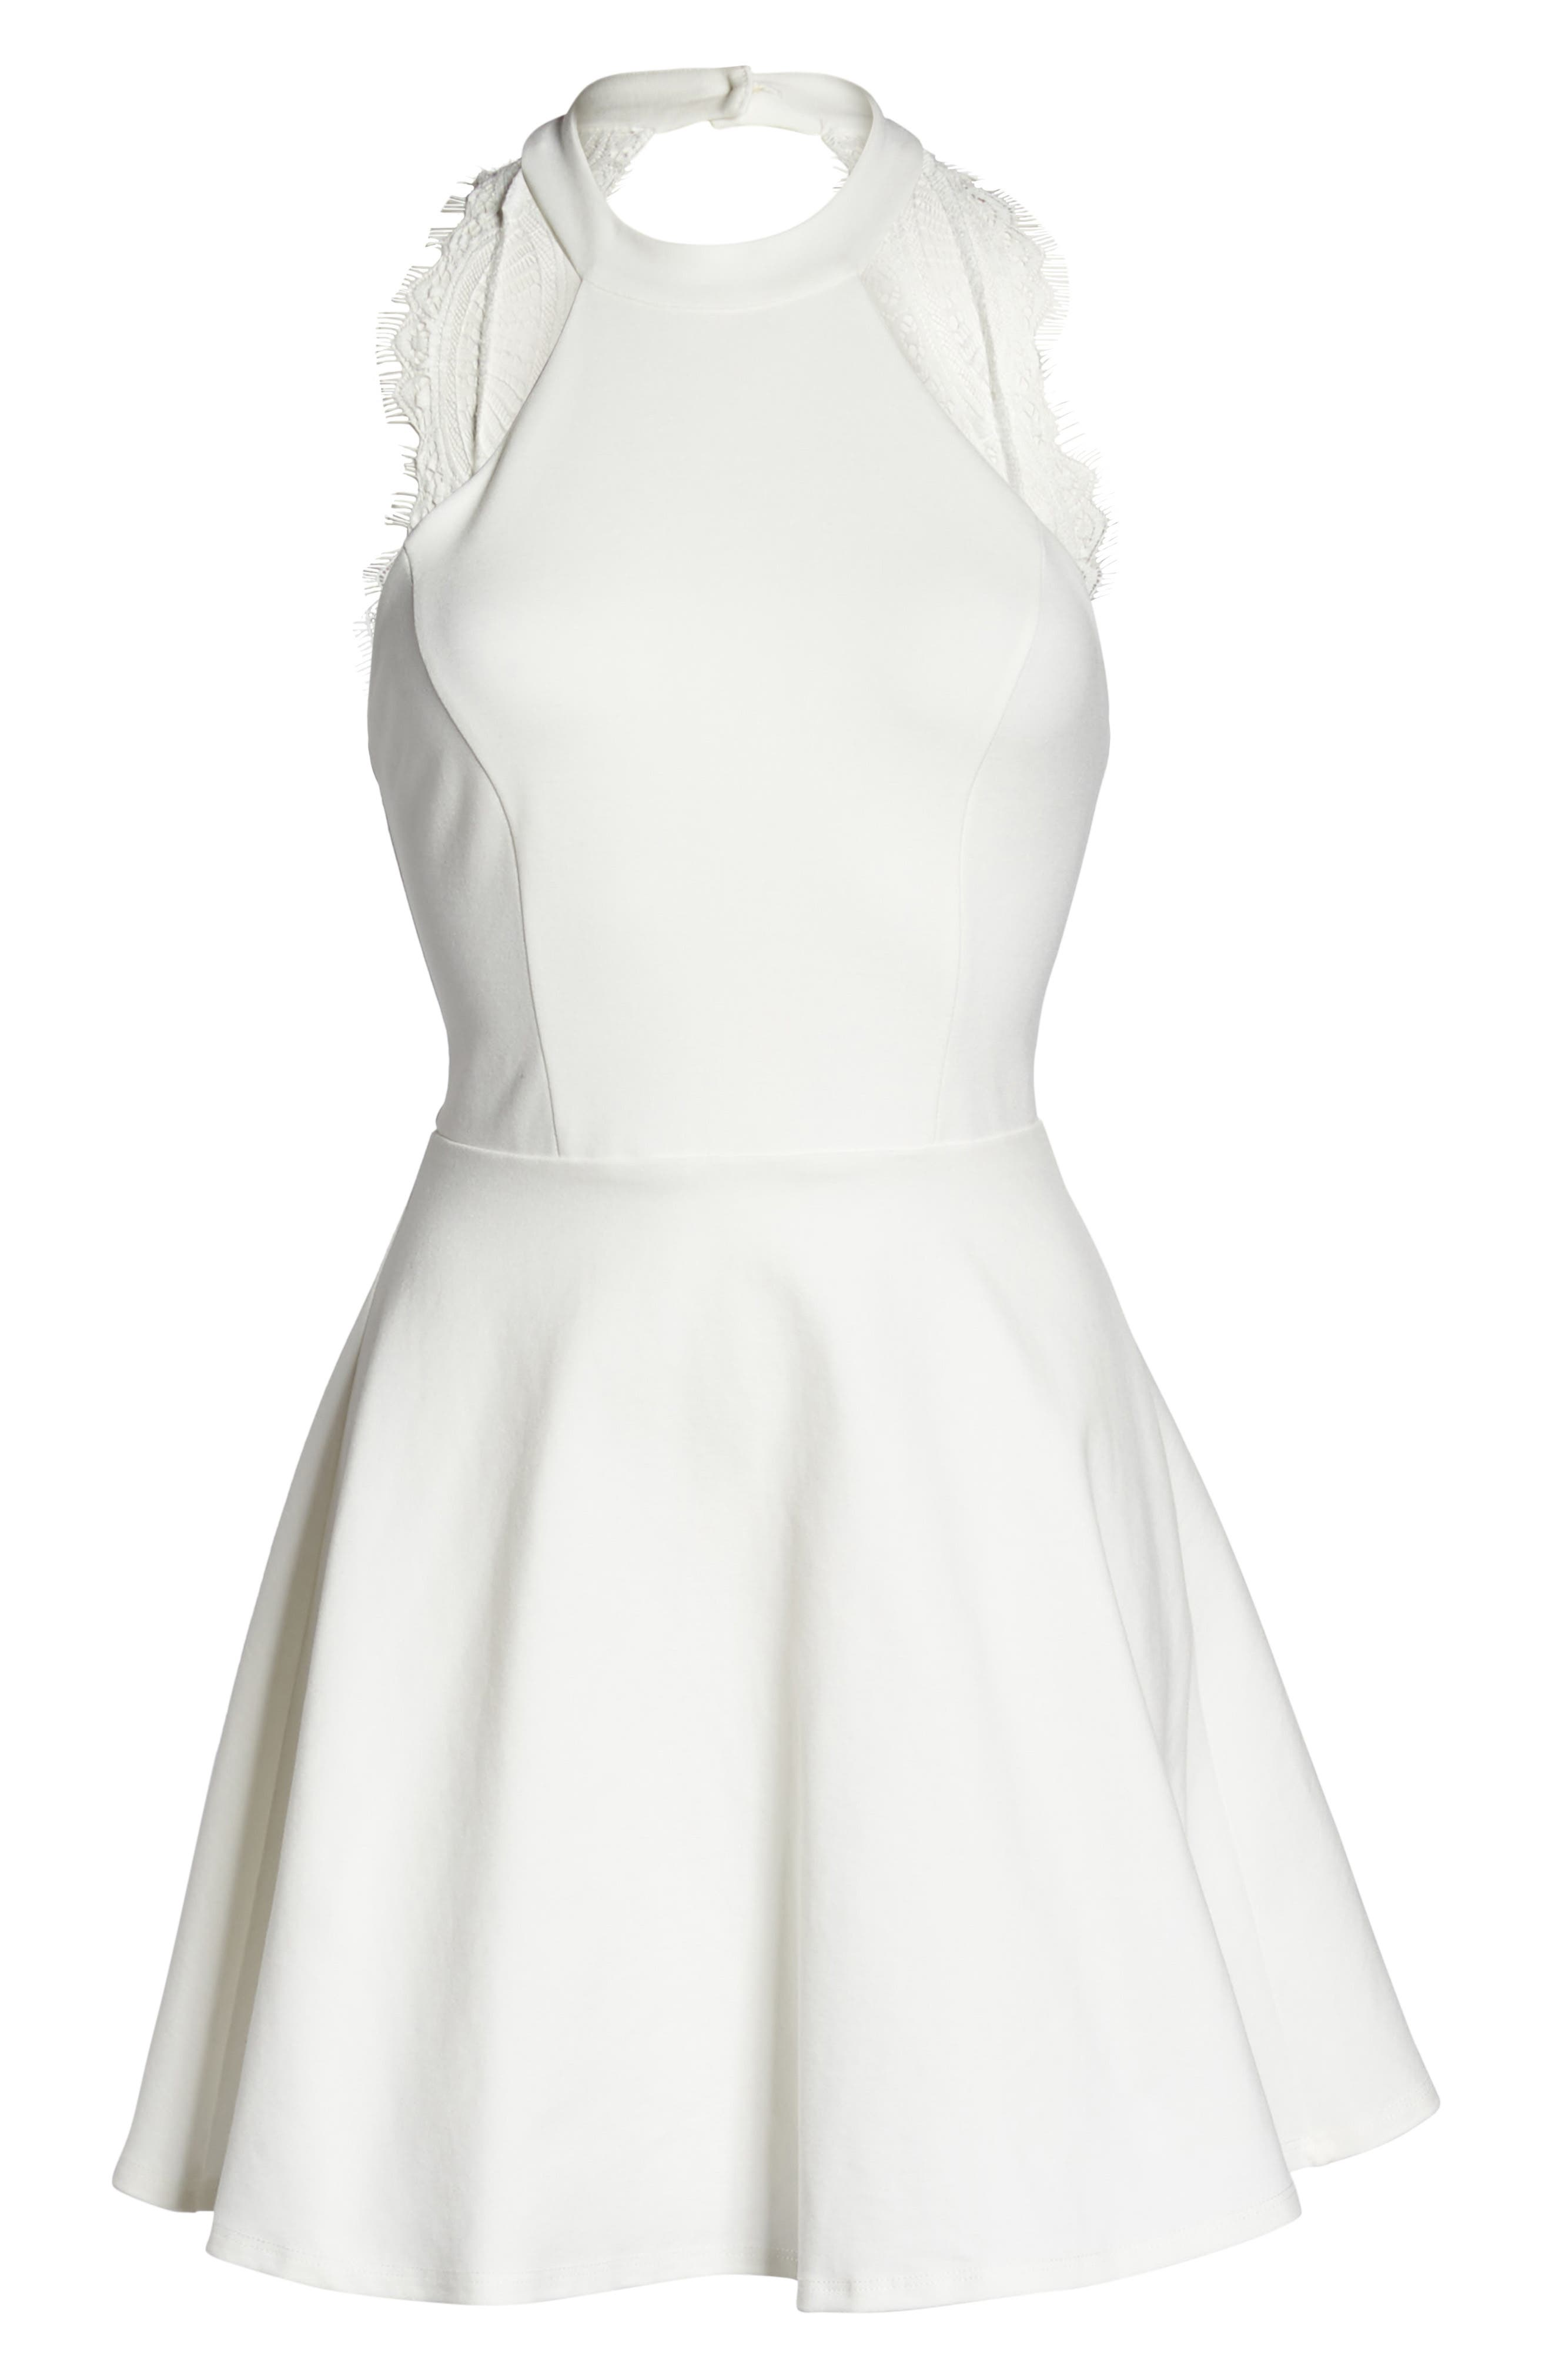 Endlessly Alluring Lace Trim Fit & Flare Dress,                             Alternate thumbnail 6, color,                             White